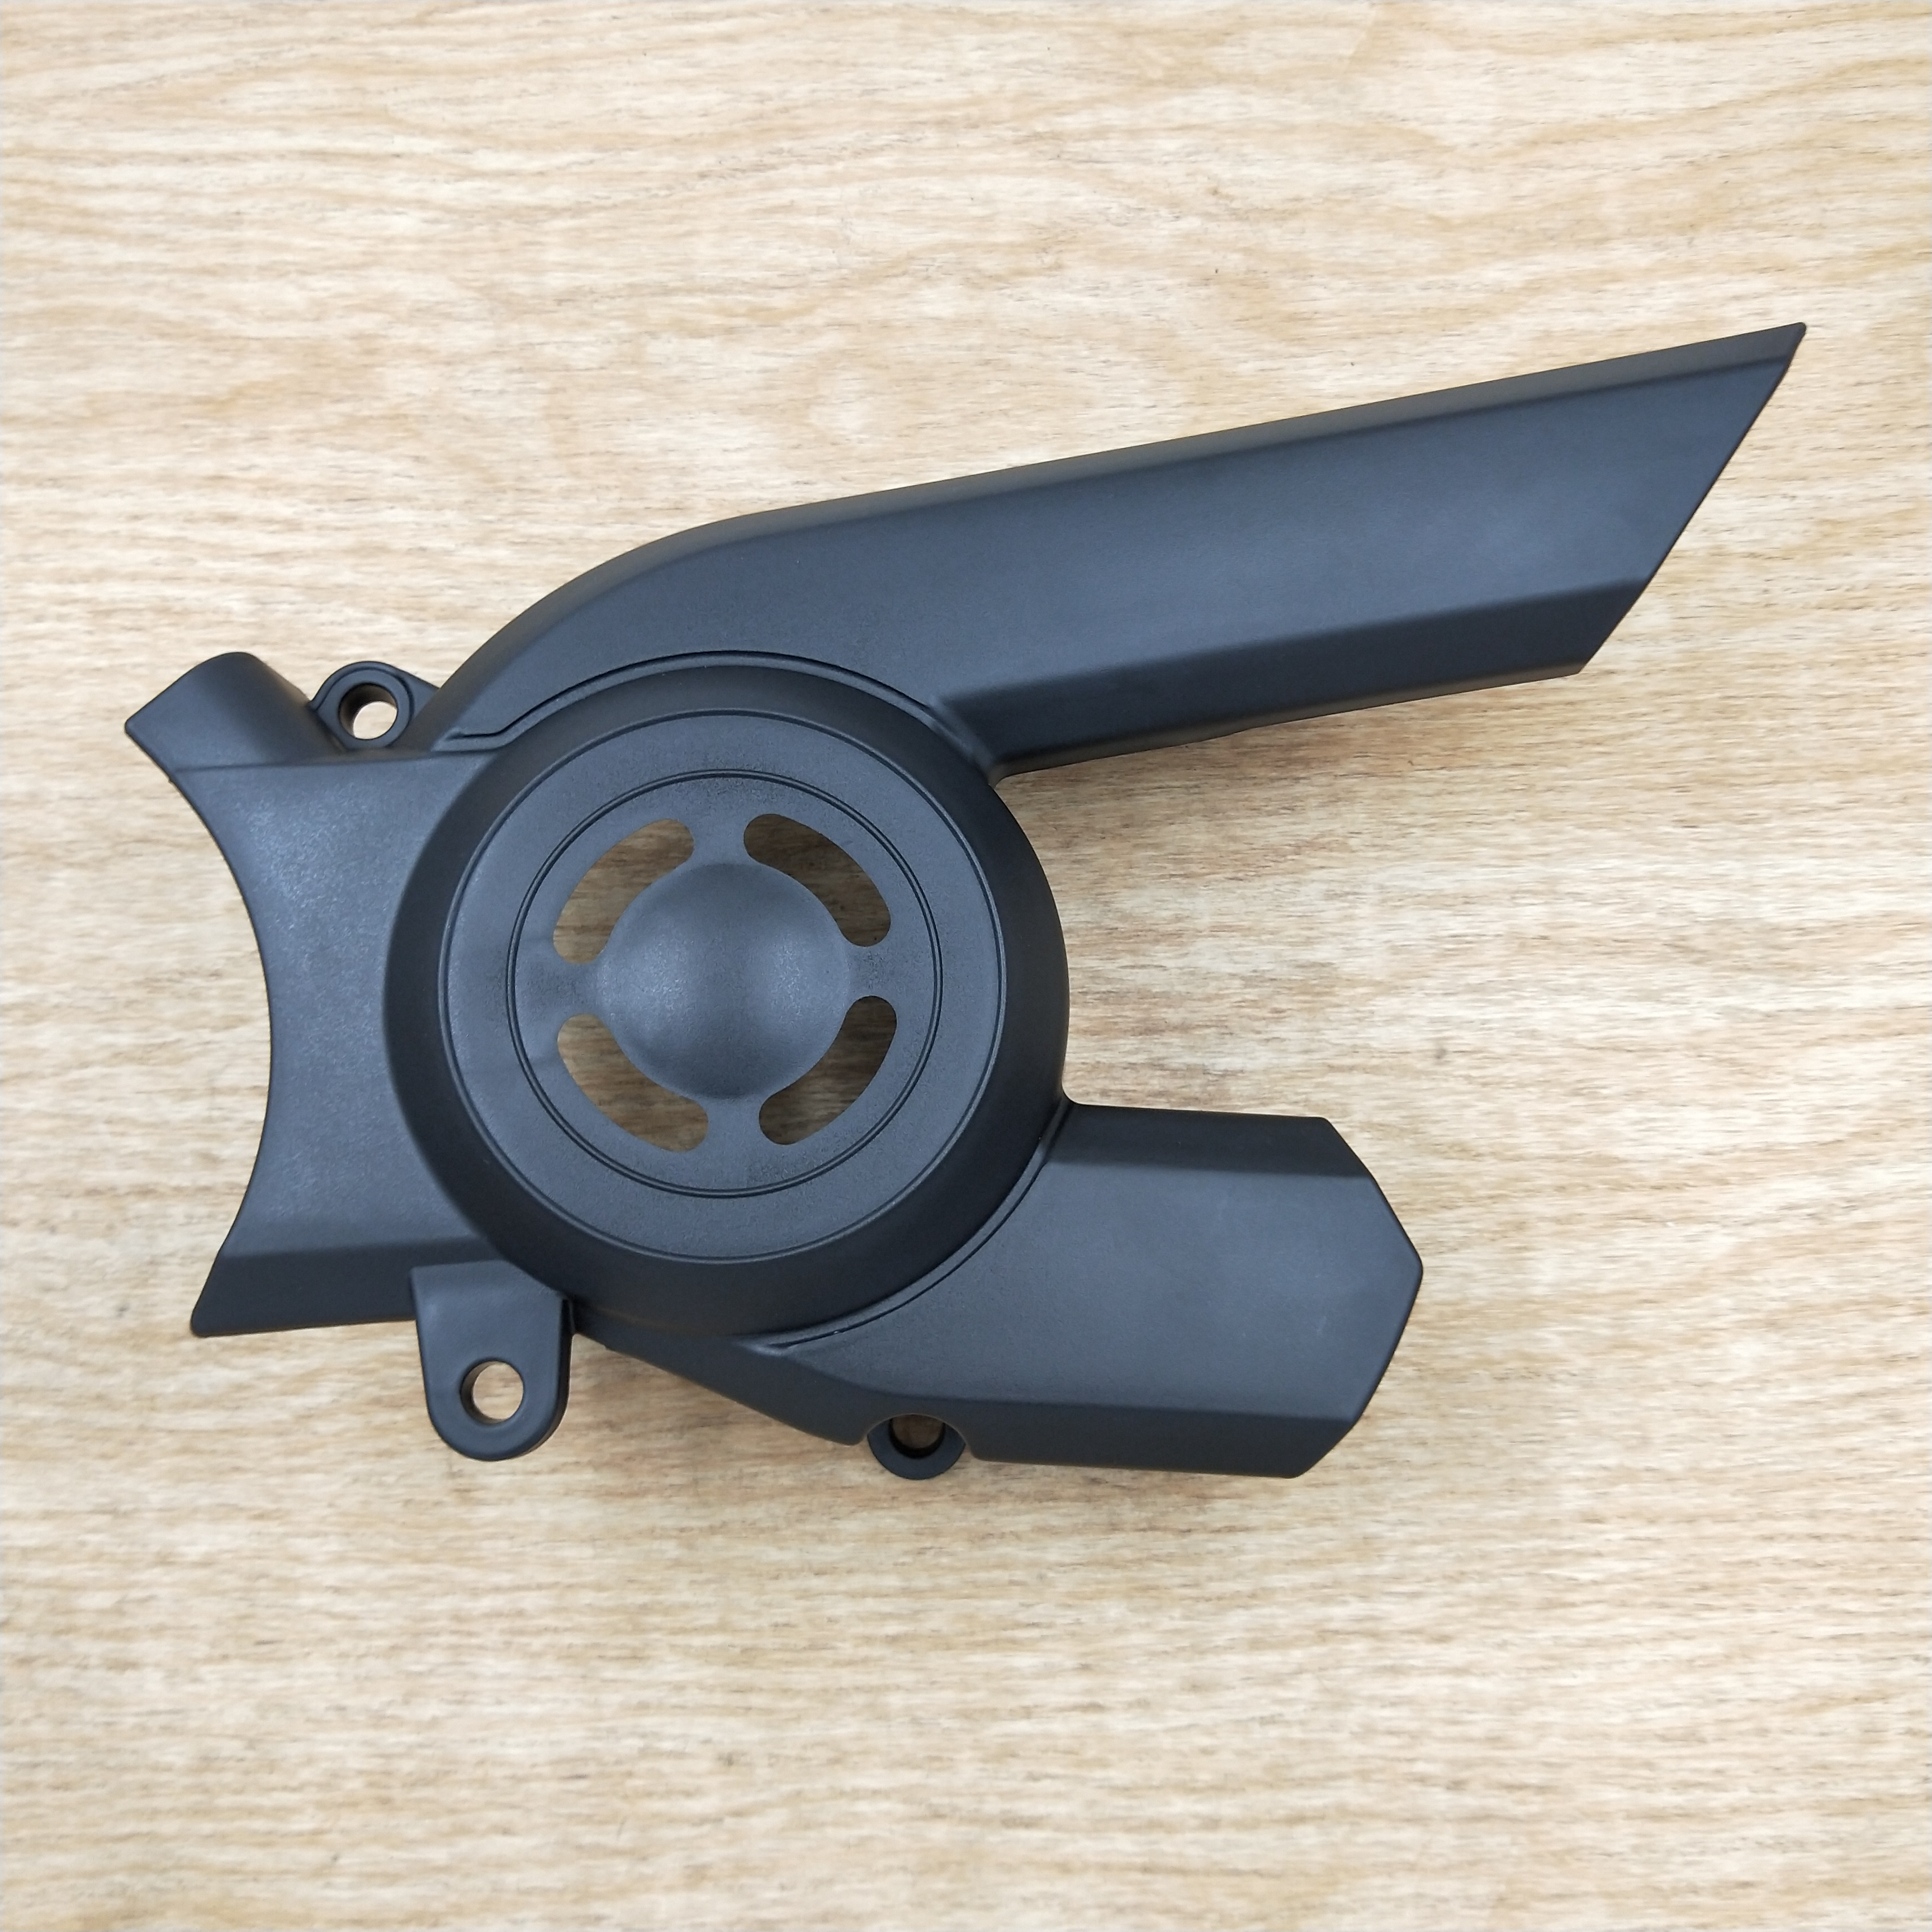 Matte Black Plastic Motorcycle Pulley Sprocket Cover For <font><b>Harley</b></font> Street <font><b>XG750</b></font> XG500 2015 2016 2017 2018 Motorcycle Parts image